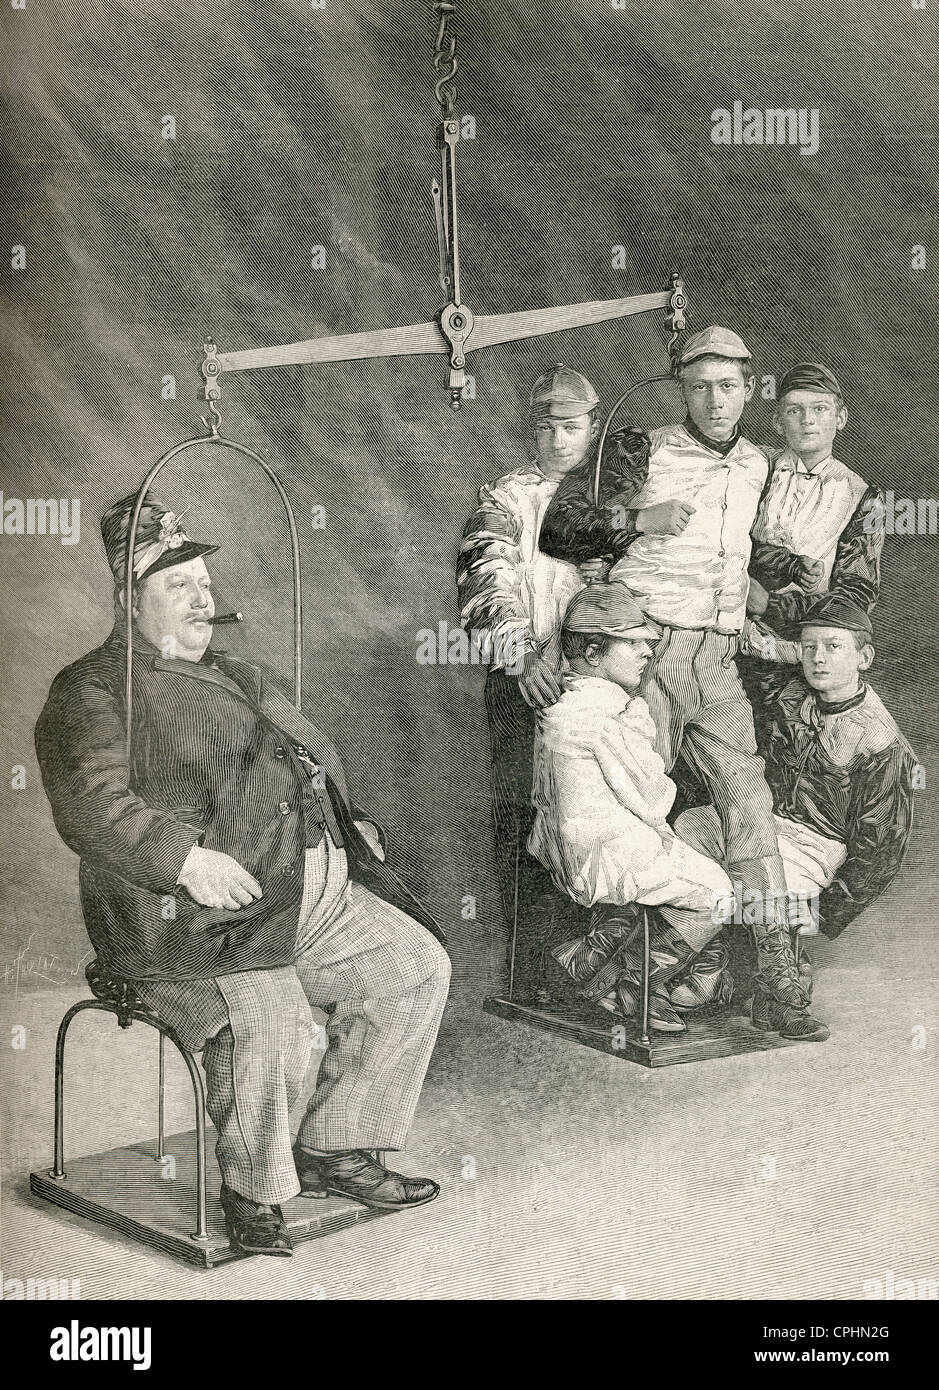 The President of the 100 Kilos Society being weighed against five jockeys. From L'Illustration published 1897. - Stock Image